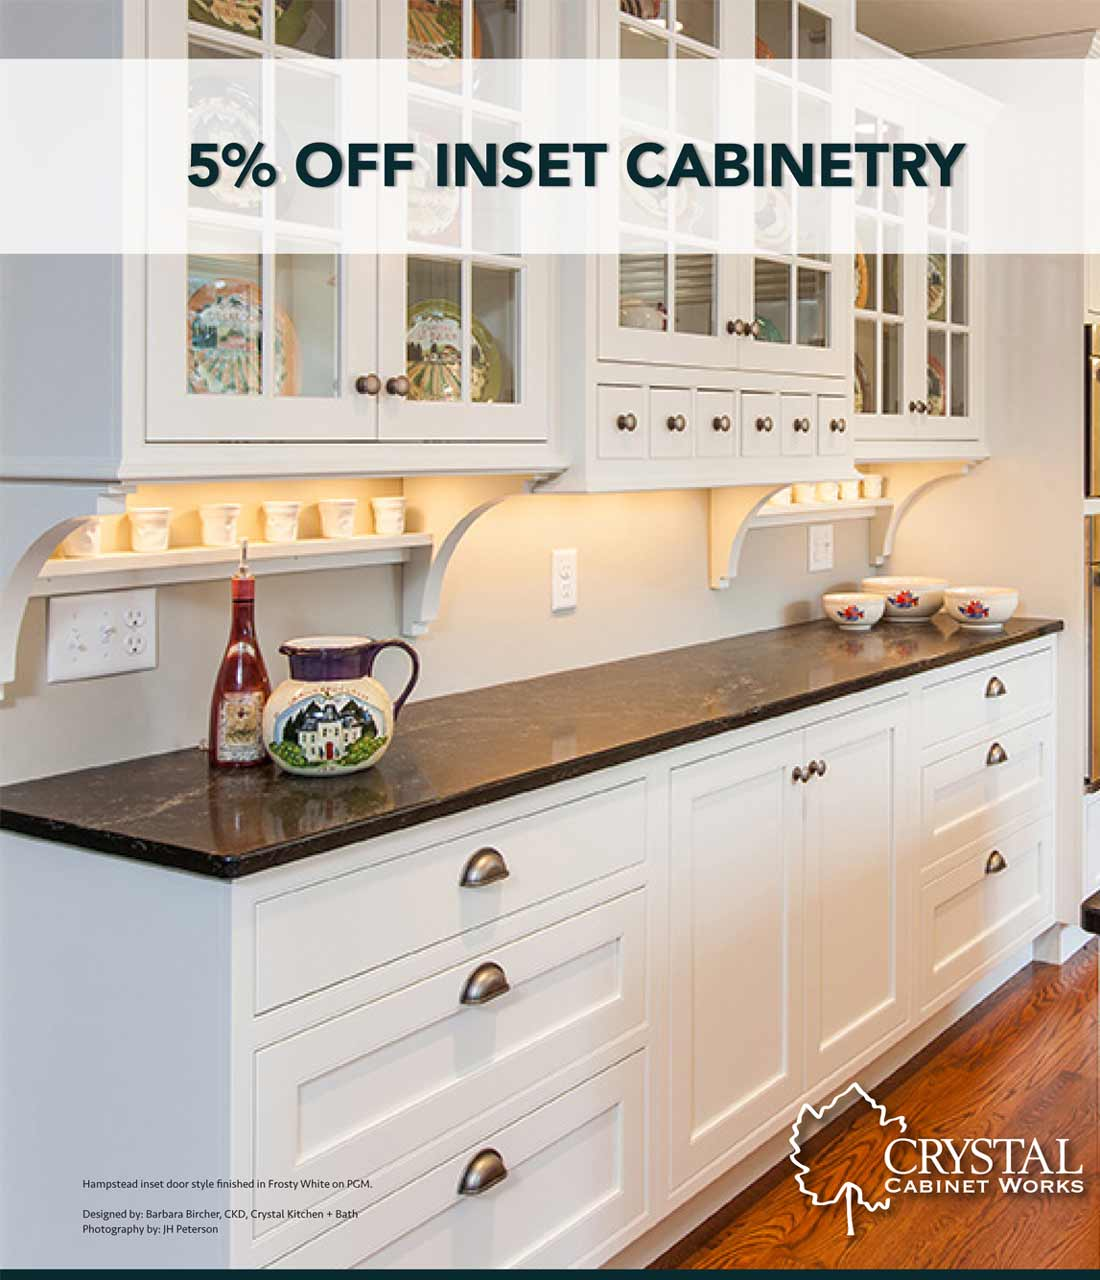 European Kitchen Cabinets Wholesale: Crystal Cabinetry Promotion On Inset Cabinets Upgrades